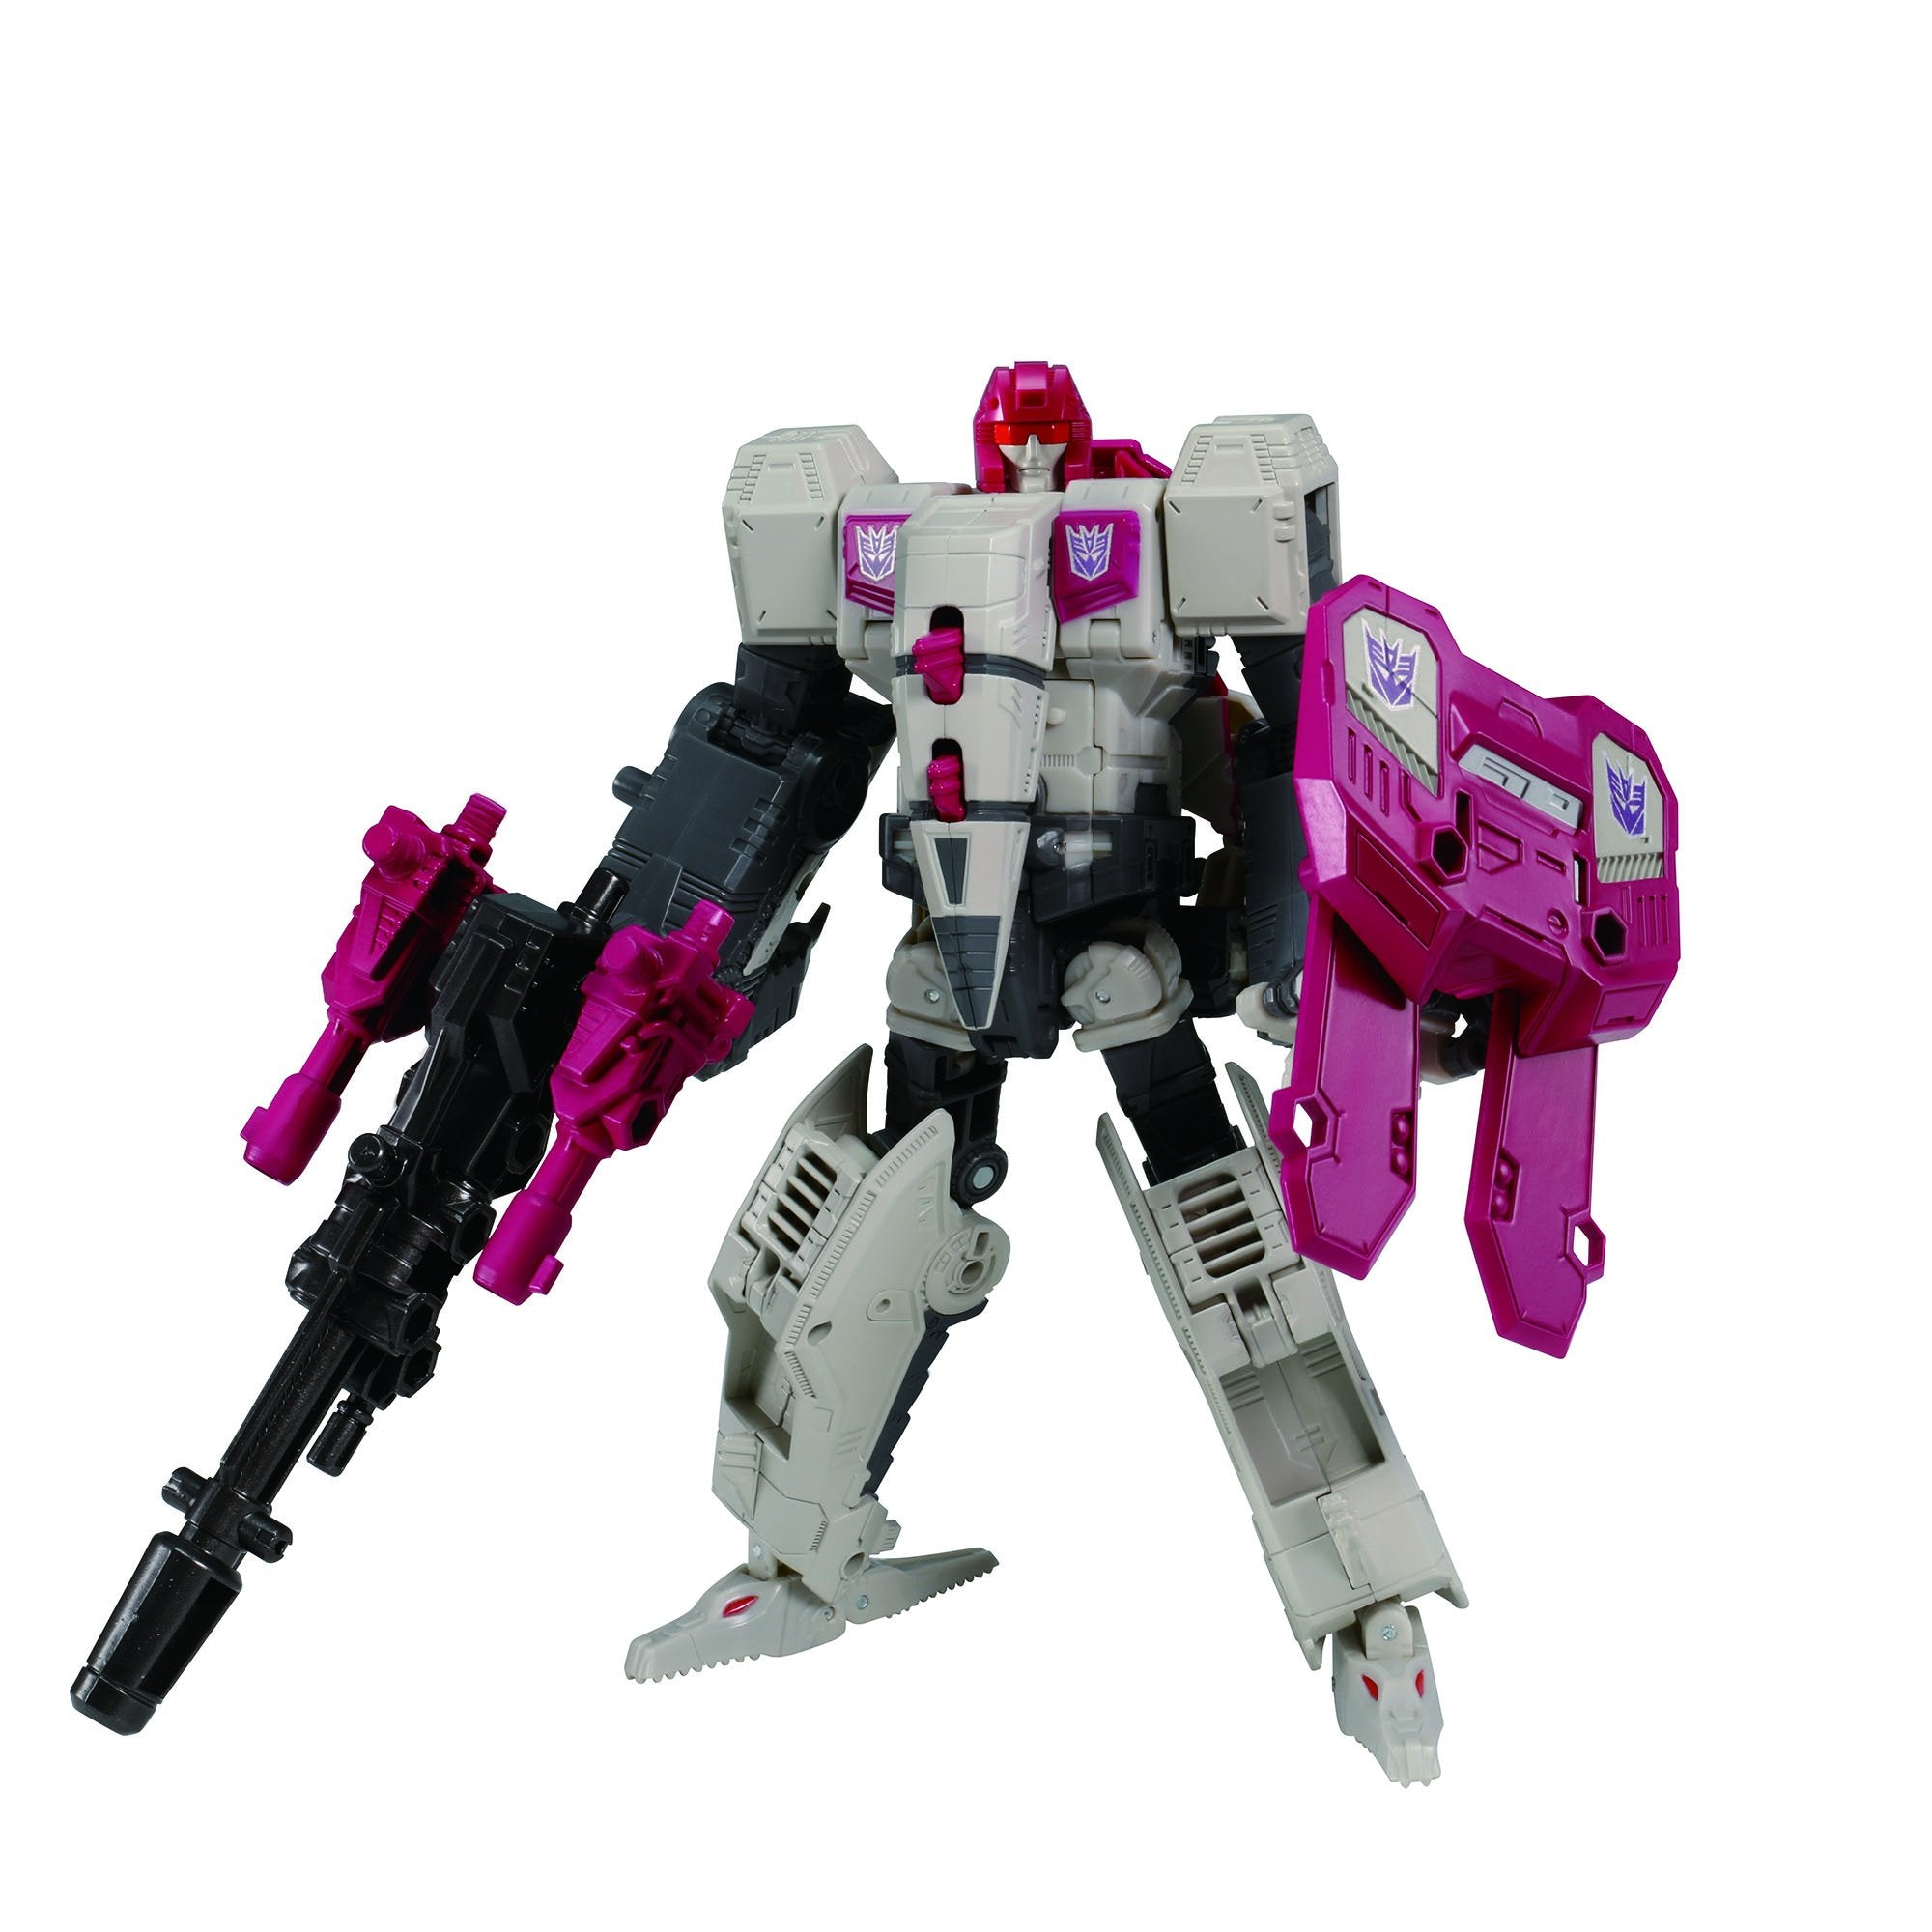 TakaraTomy - Transformers Generations Selects - Abominus (TakaraTomy Mall Exclusive)